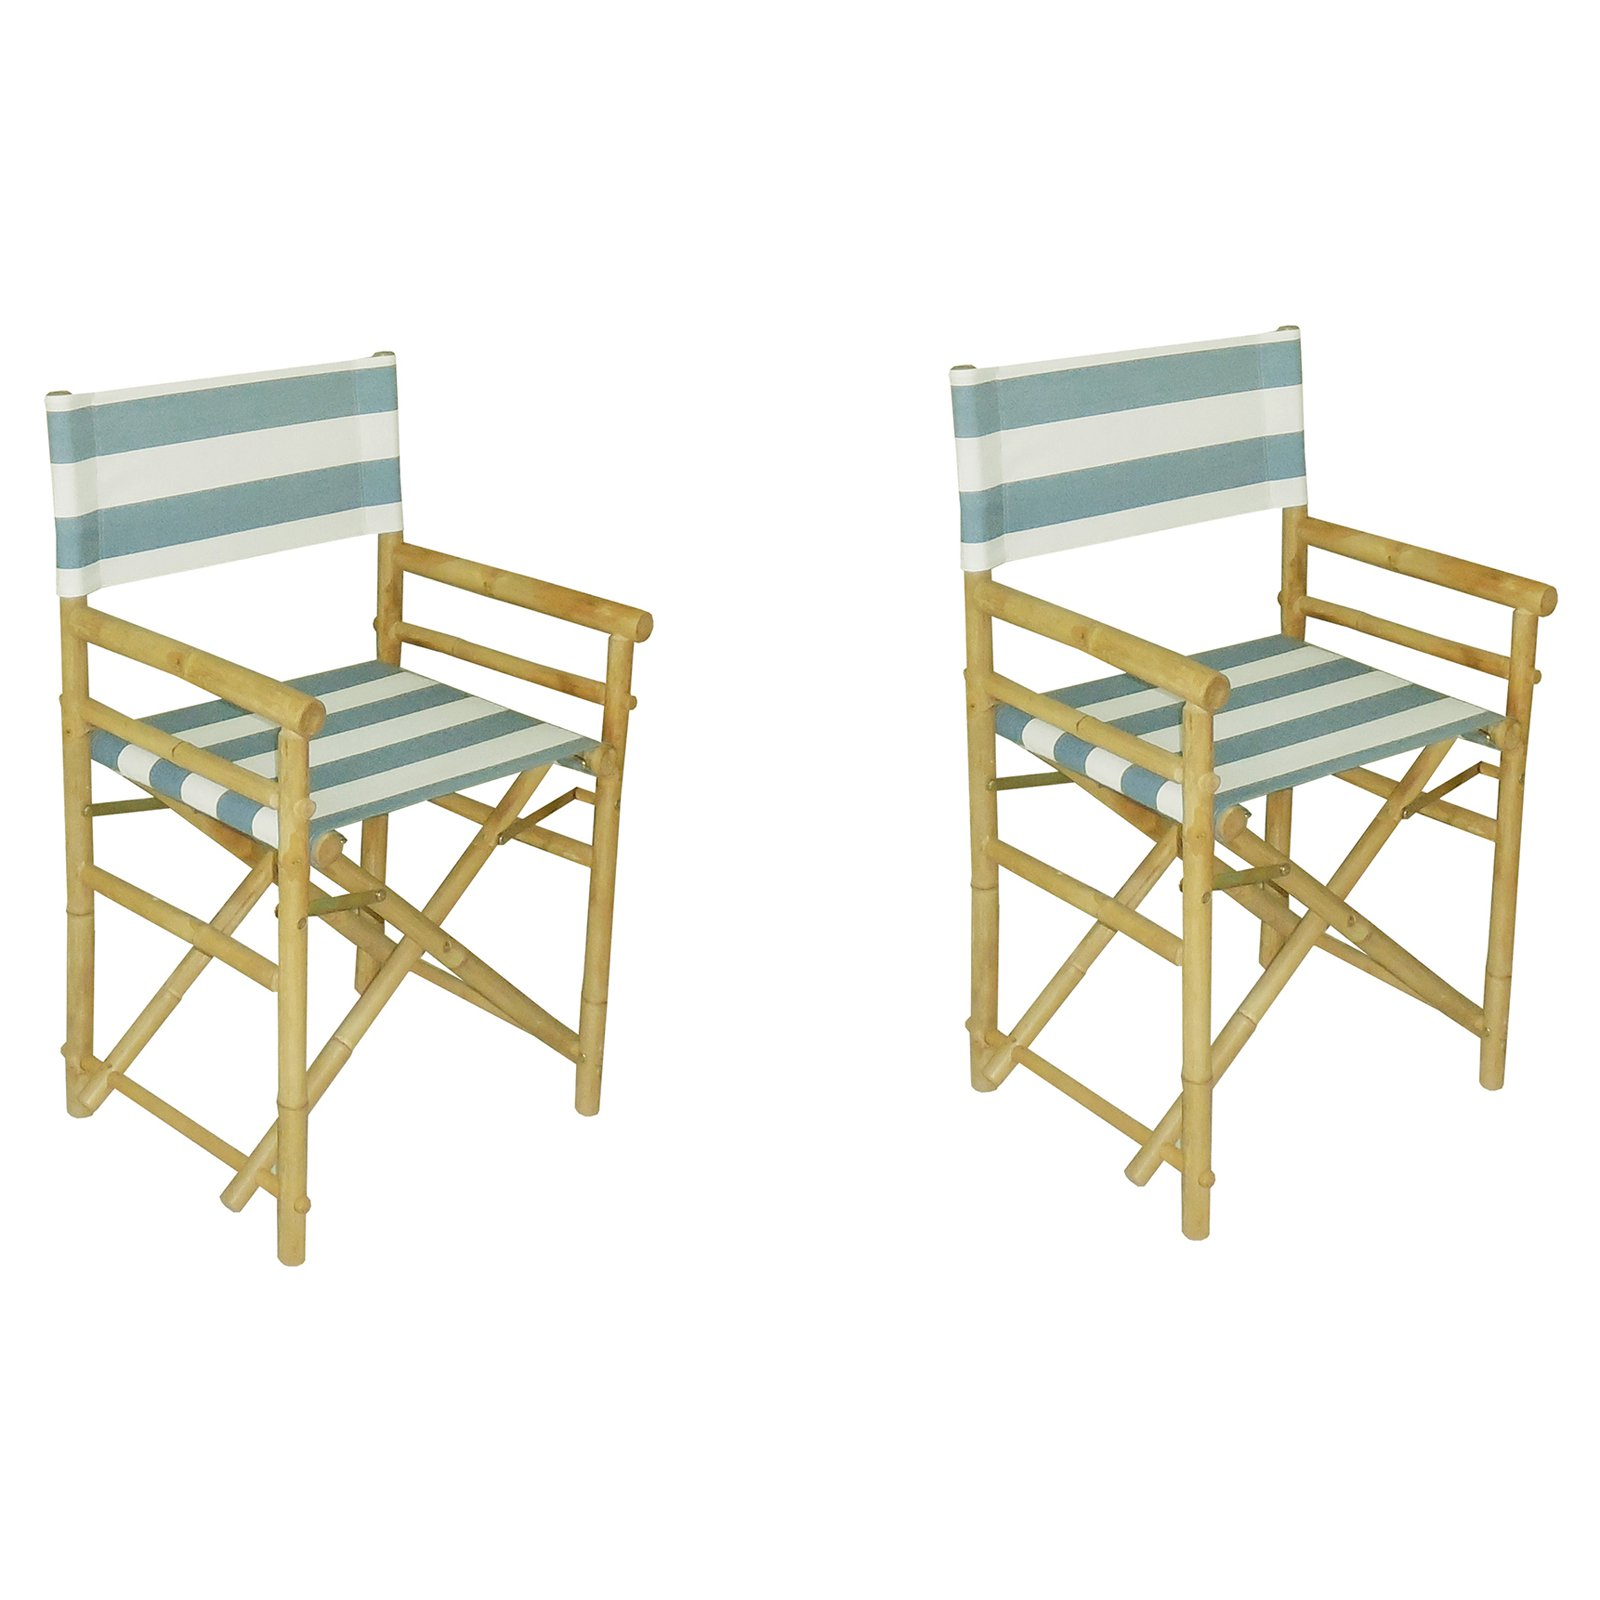 Phat Tommy Foldable Directors Chairs - Set of 2